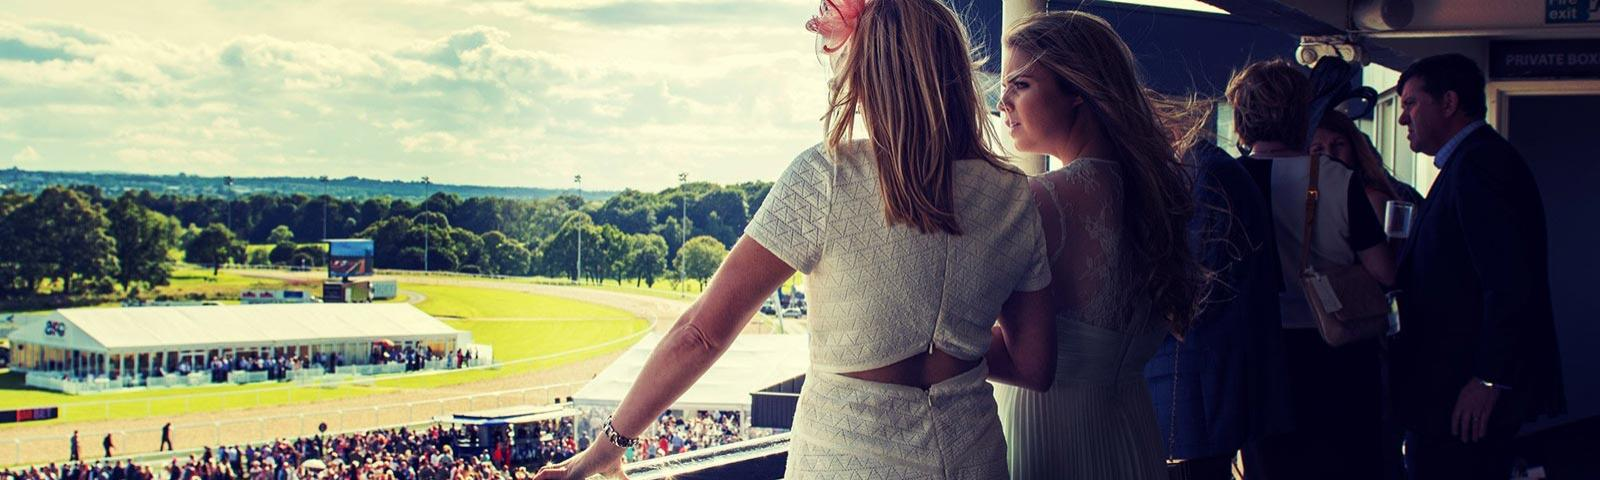 A group enjoy the view over Newcastle Racecourse from a hospitality area.